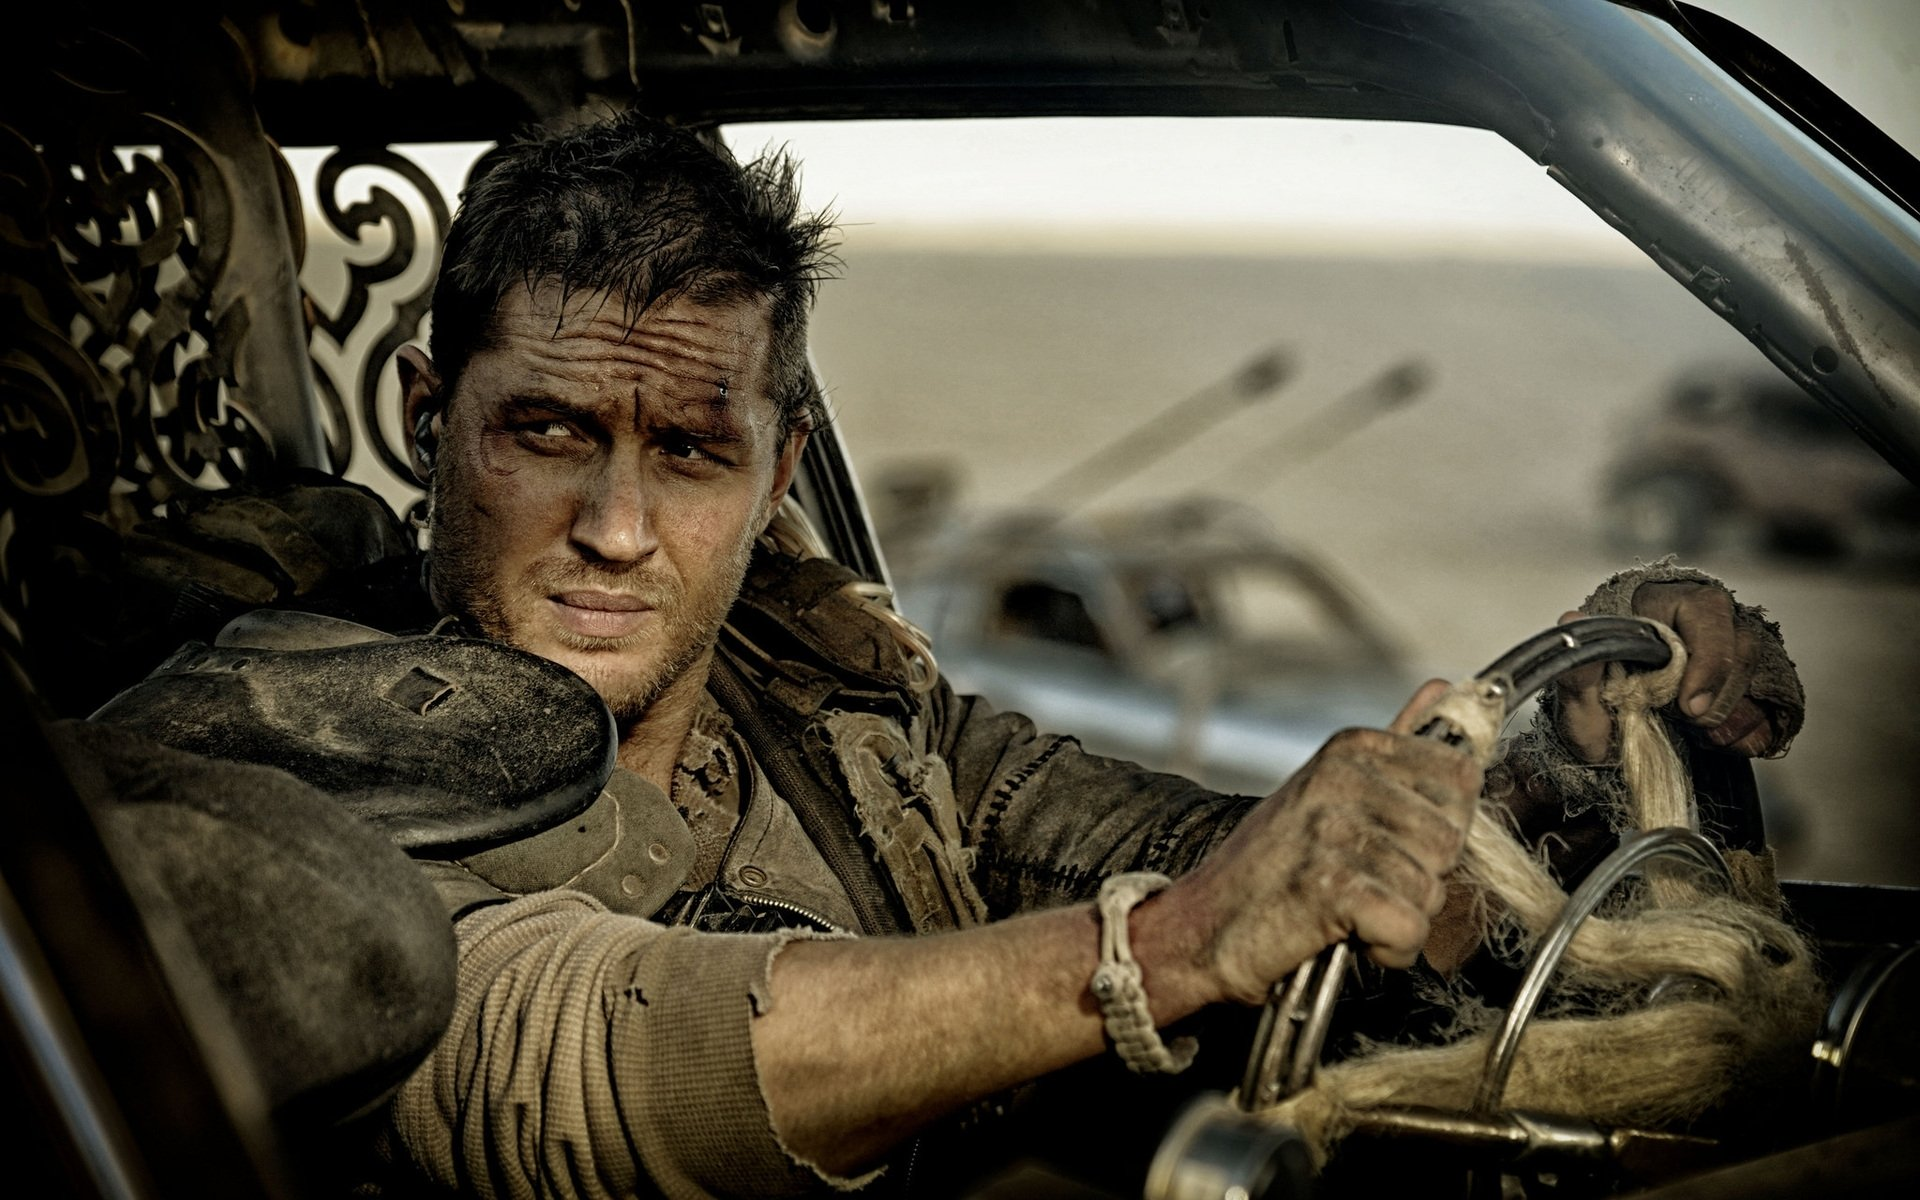 Movie - Mad Max: Fury Road  Mad Max Sci Fi Movie Max Rockatansky Tom Hardy Wallpaper